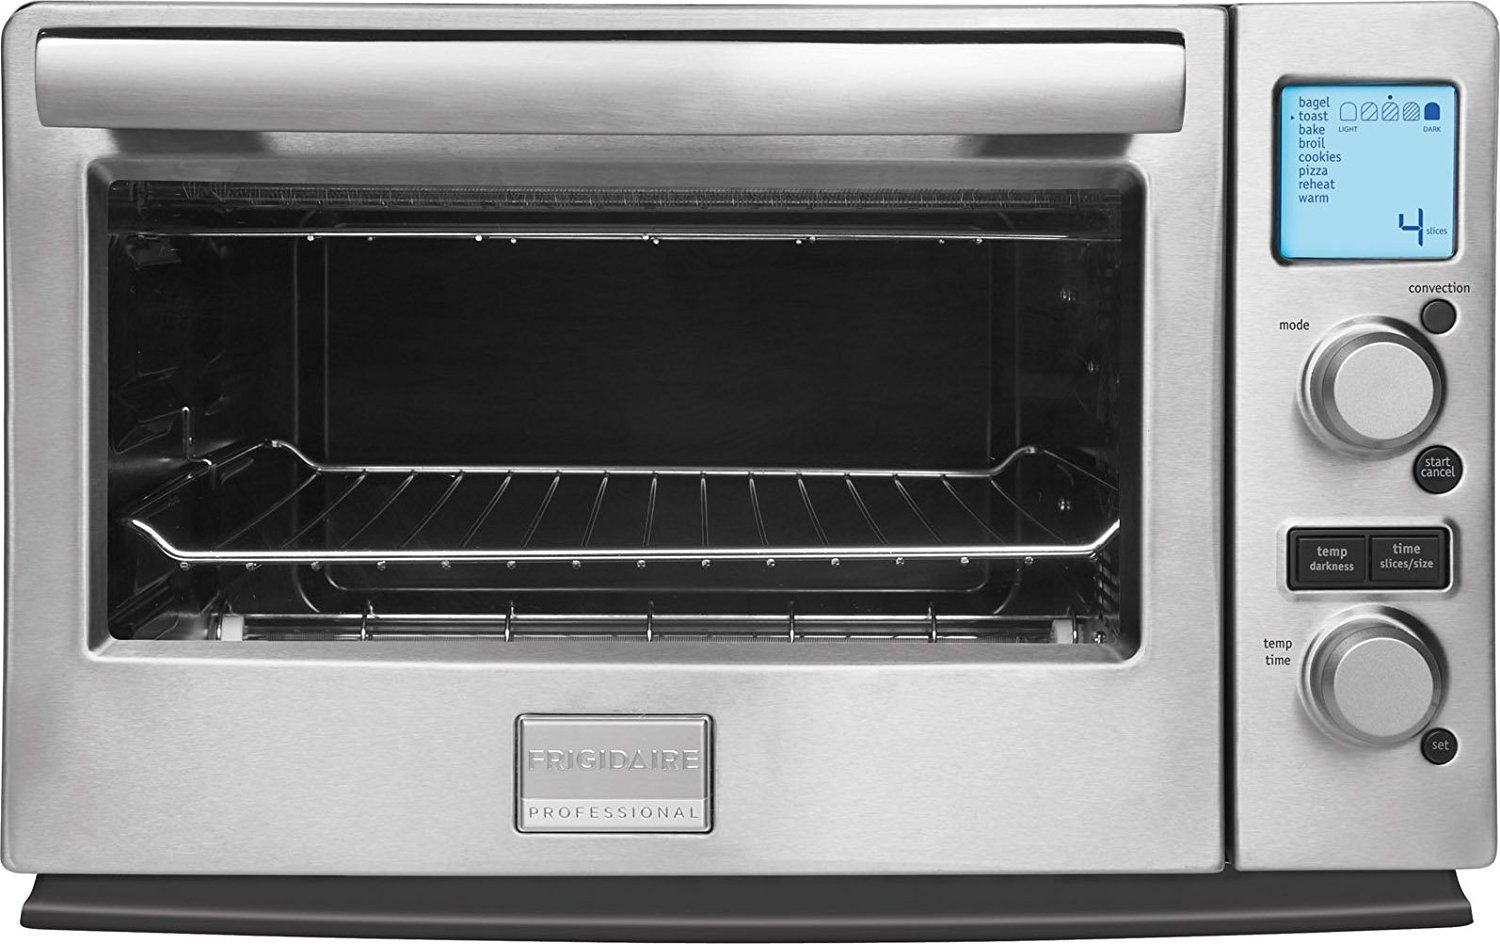 Frigidaire Professional Stainless Programmable 6 Slice Infared Convection Toaster Oven Check O With Images Toaster Oven Convection Toaster Oven Frigidaire Professional